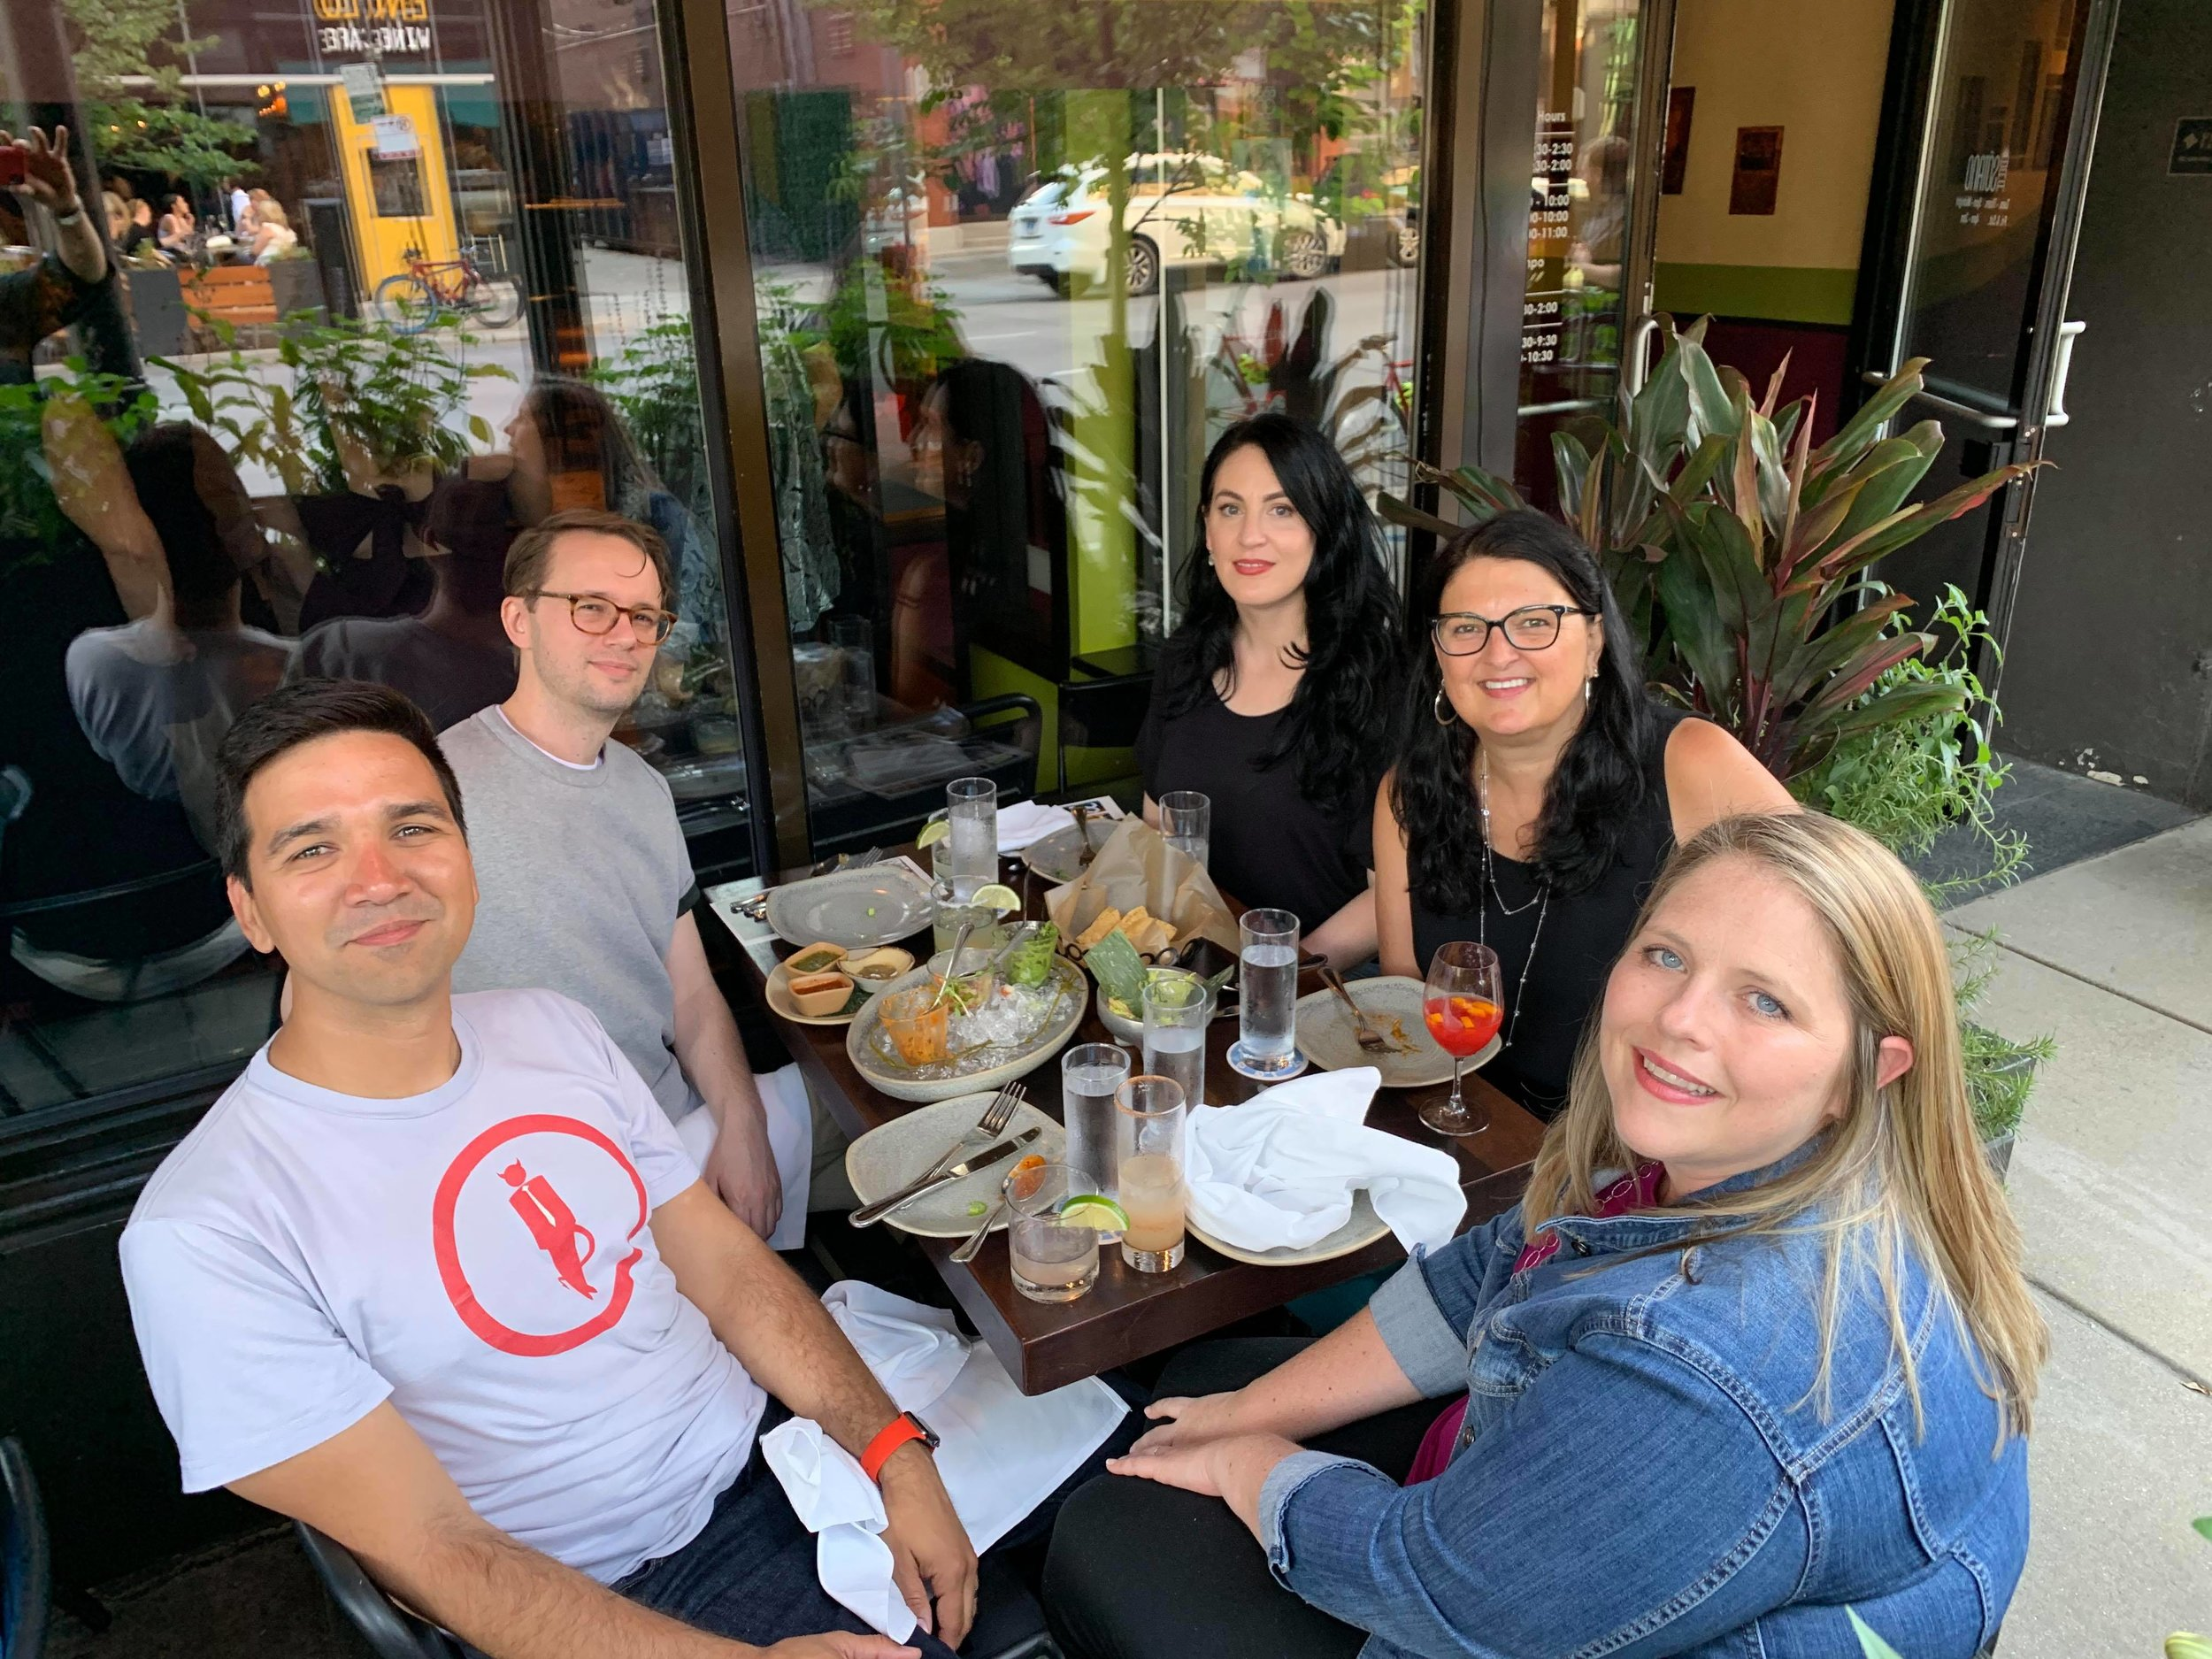 With Javier from Pretend Radio (and his wife at the front), Josh from True Crime Bullshit, and Jules from Hong Kong Confidential